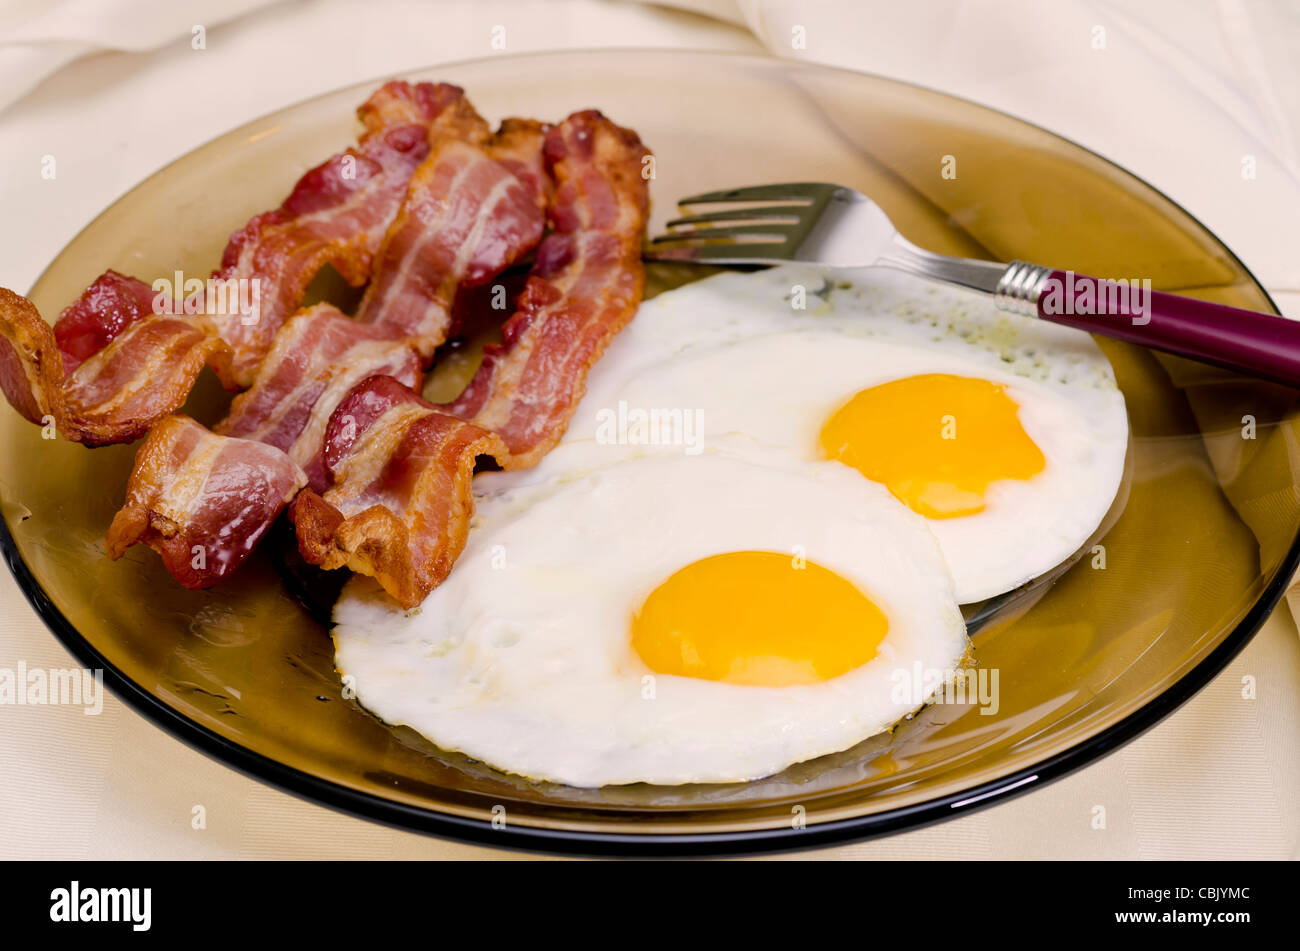 Fried Eggs and Bacon - Stock Image